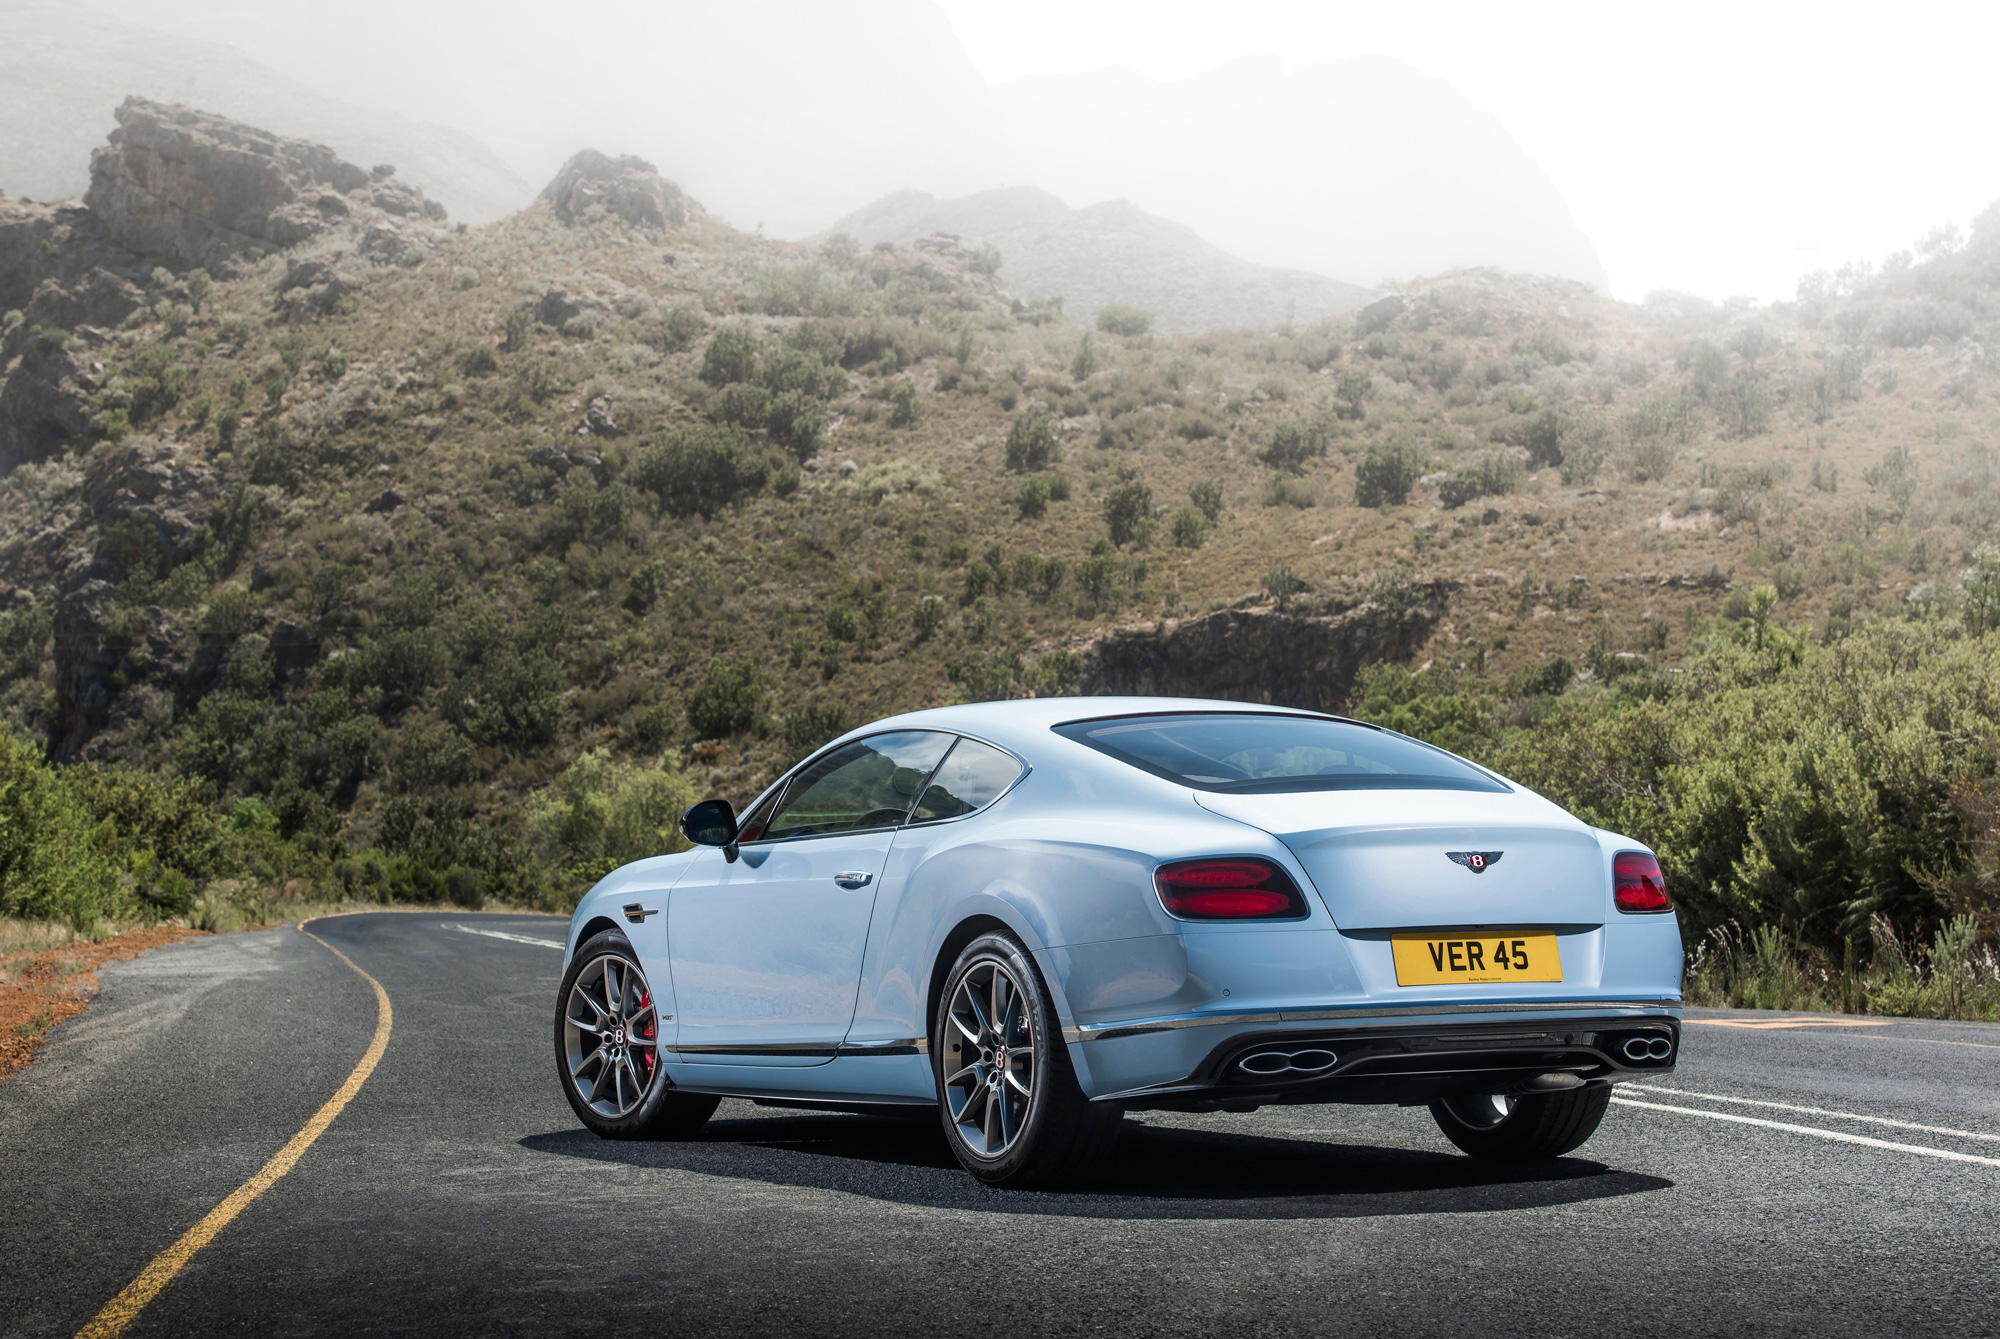 release in brawny the new pictures price a trans specs of range cars grand news bentley continental gt tourer revealed british prices